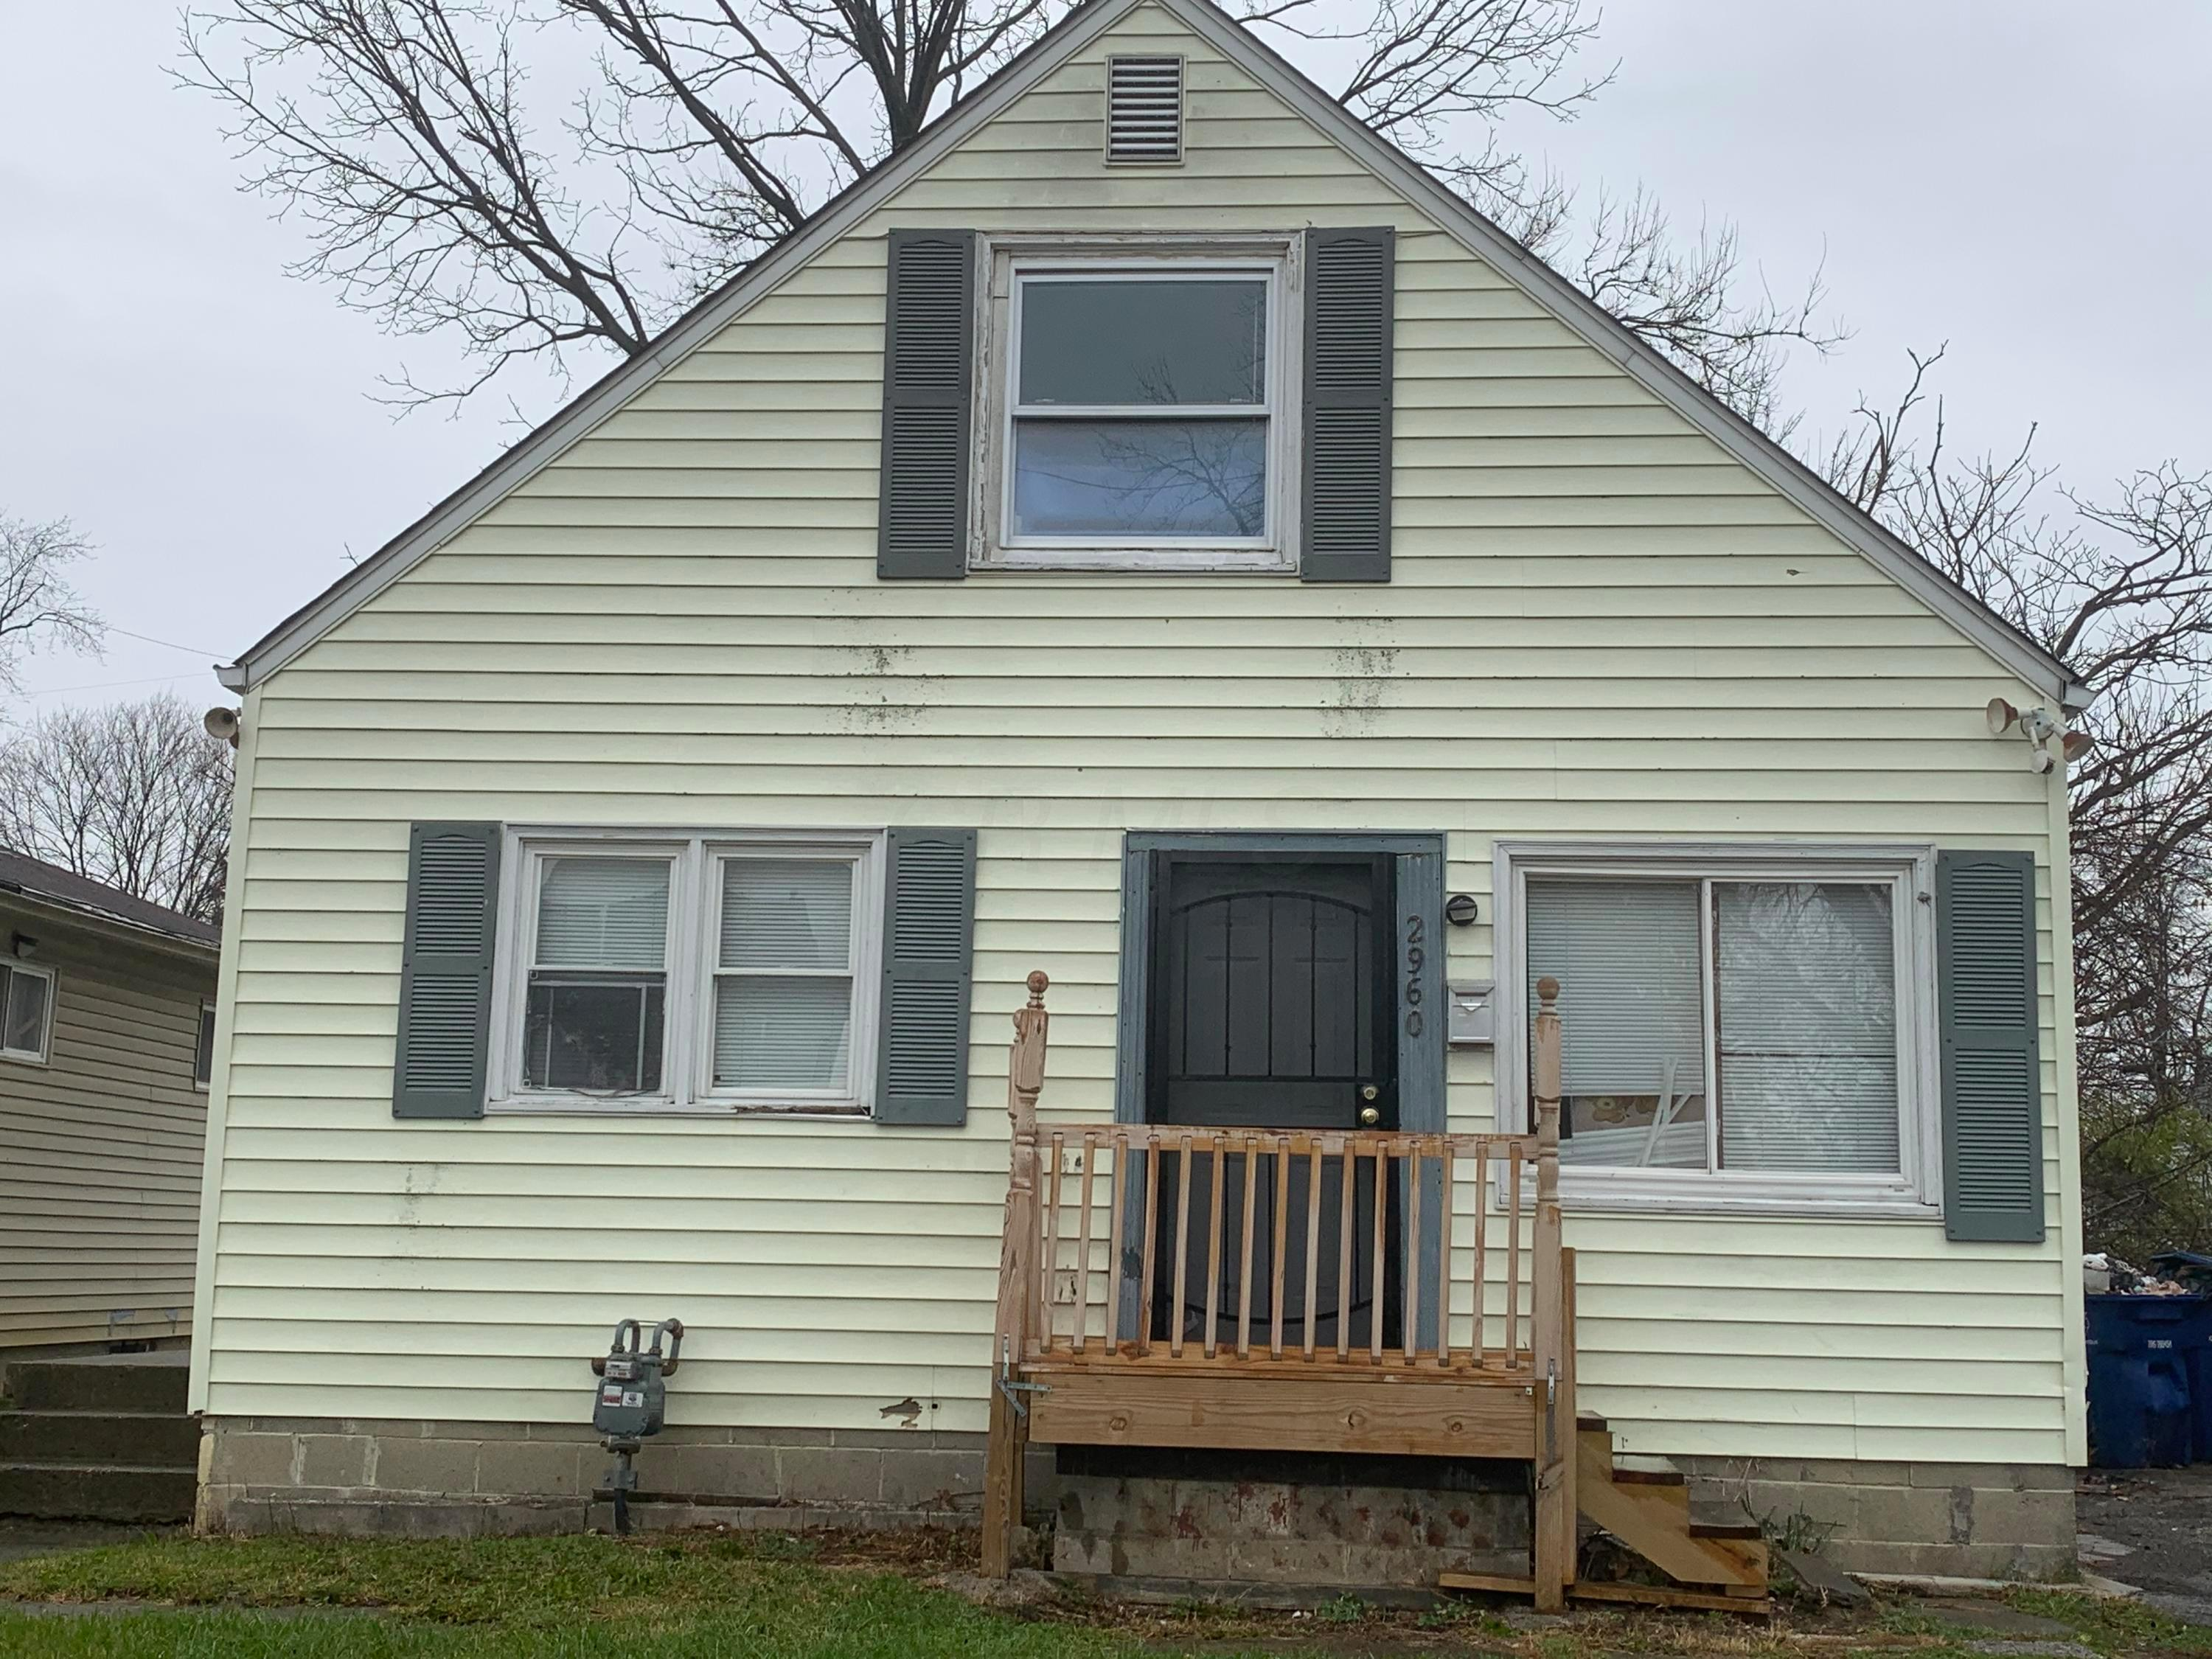 2960 11th Avenue, Columbus, Ohio 43219, 3 Bedrooms Bedrooms, ,1 BathroomBathrooms,Residential,For Sale,11th,220041118